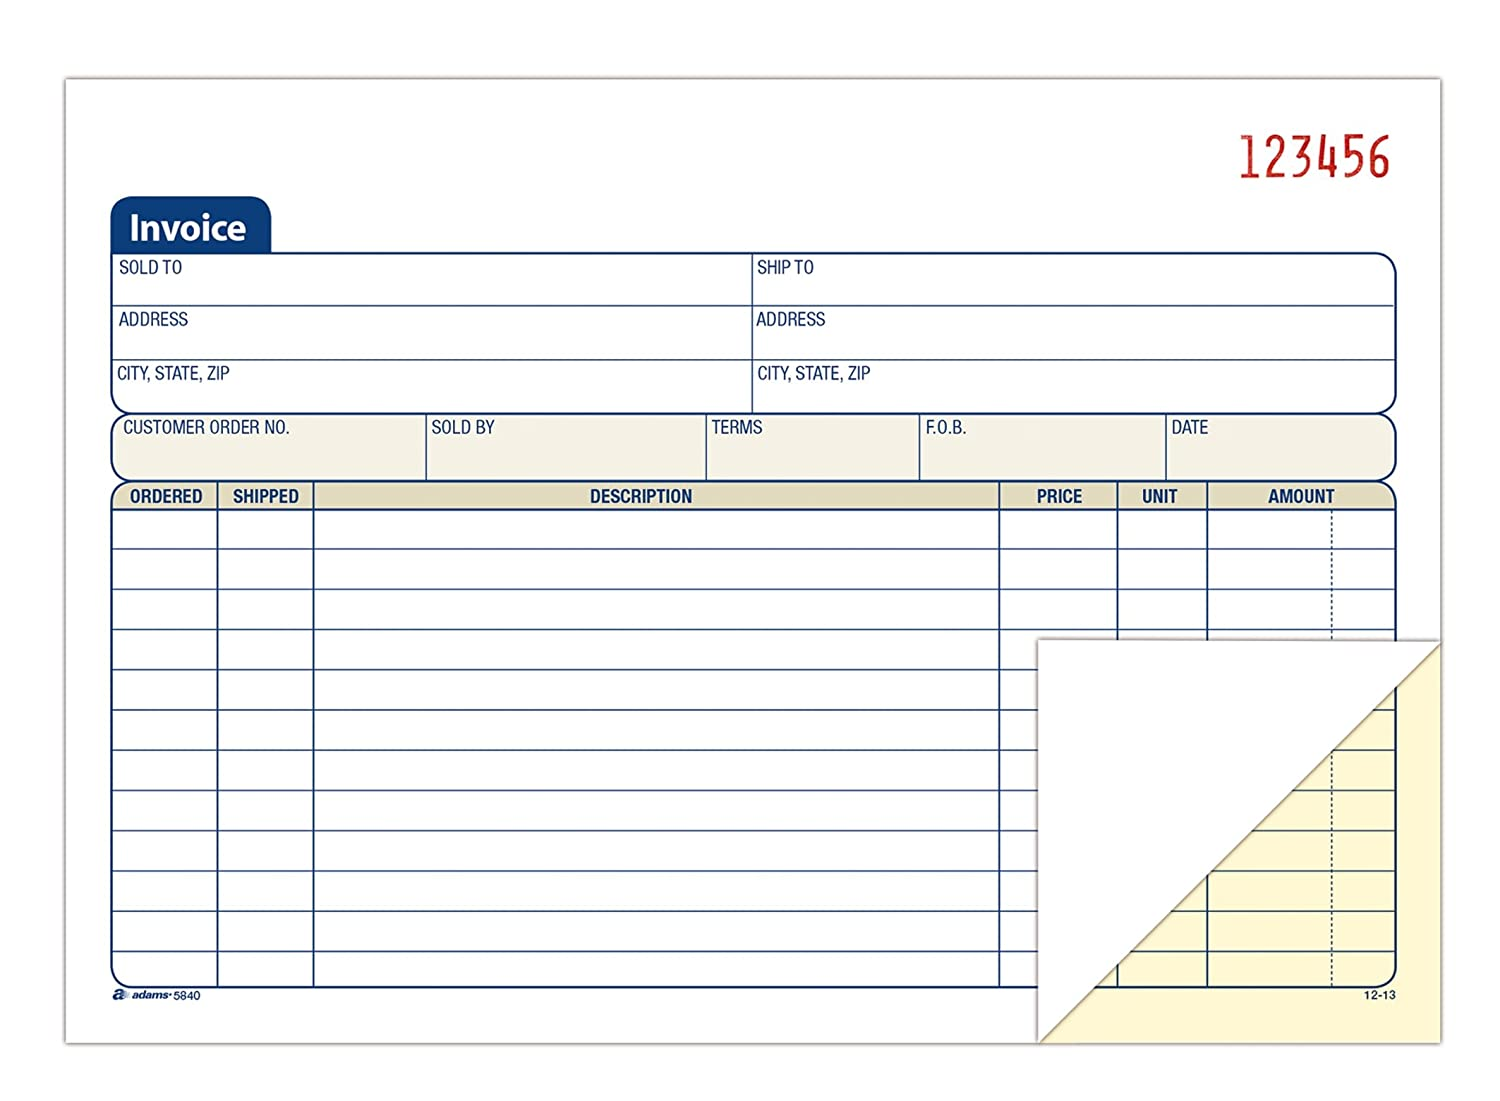 com adams invoice book part carbonless x  com adams invoice book 2 part carbonless 5 9 16 x 8 7 16 inches 50 sets per book dc5840 blank purchase order forms office products